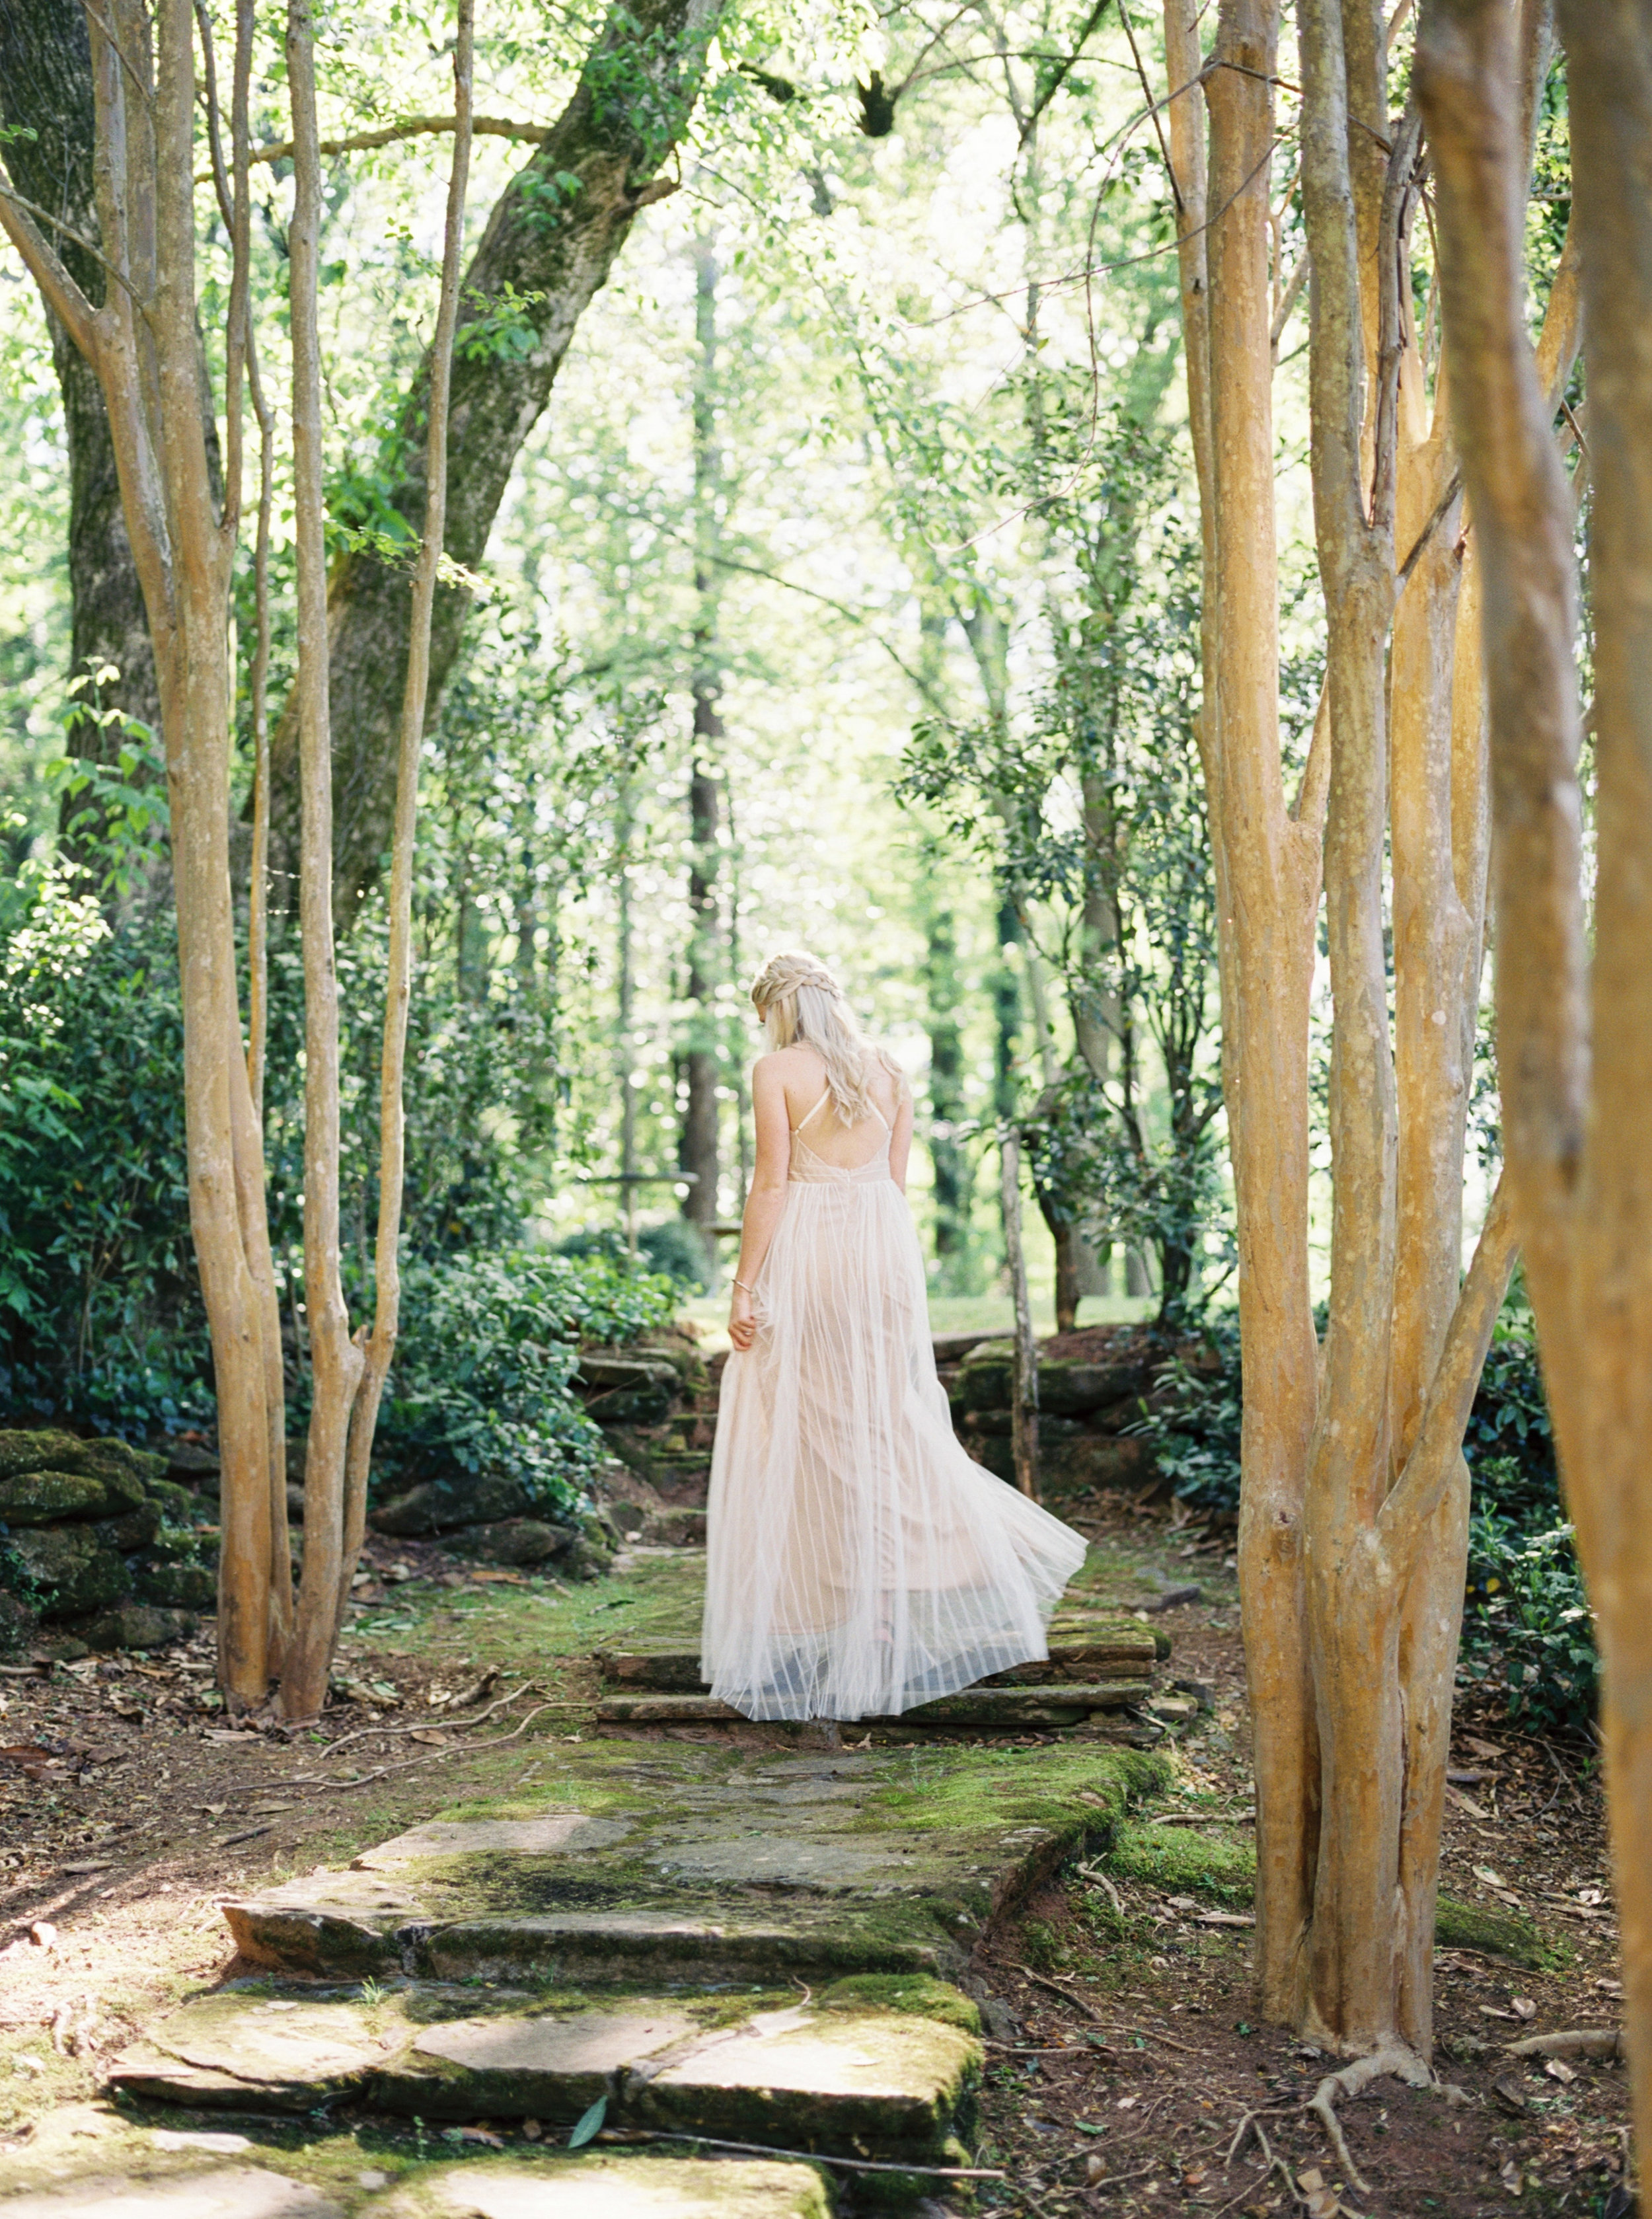 Erin_Johnny_Engagement_Dunaway_Gardens_Georgia_Film_Fallen_Photography-59.JPG